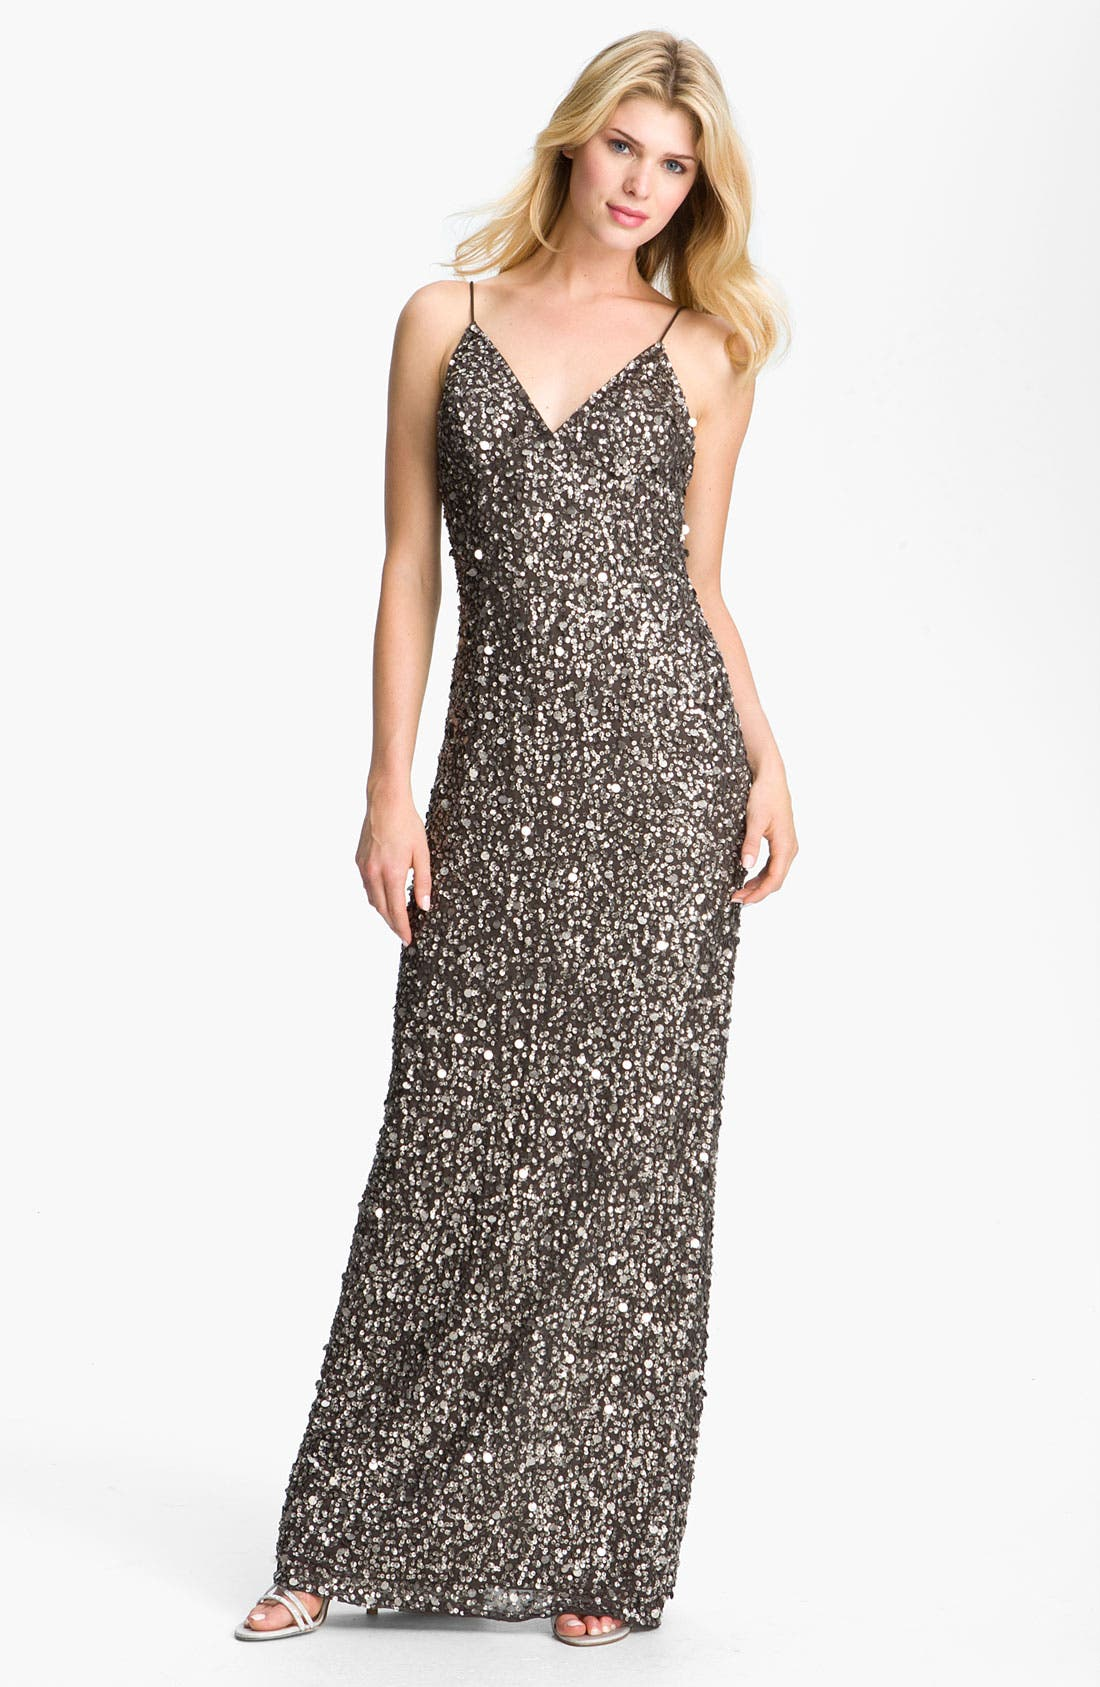 Main Image - Adrianna Papell Sequin Chiffon Gown